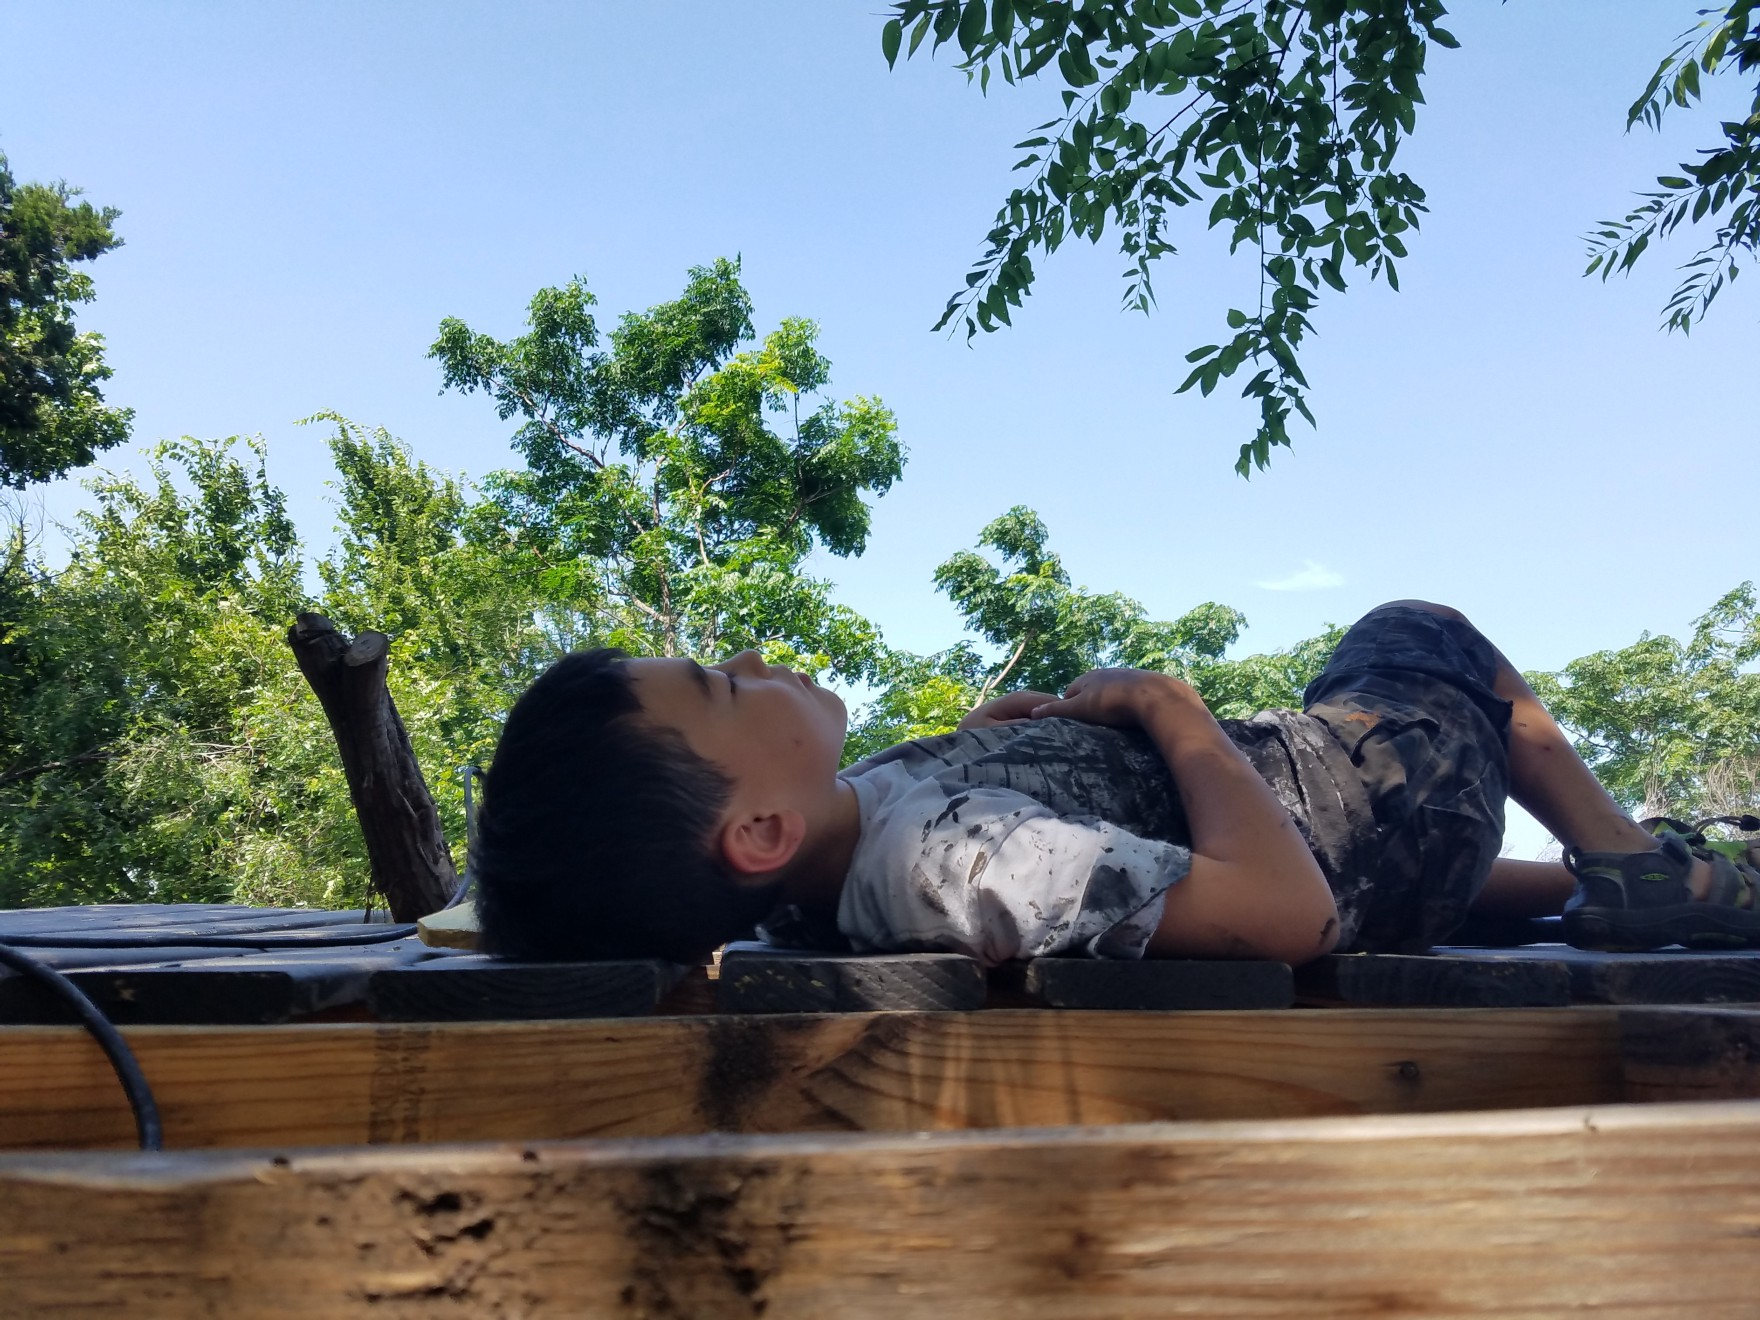 Max taking a nap while painting the new pergola for the treehouse on Gillespie — June 15th, 2016